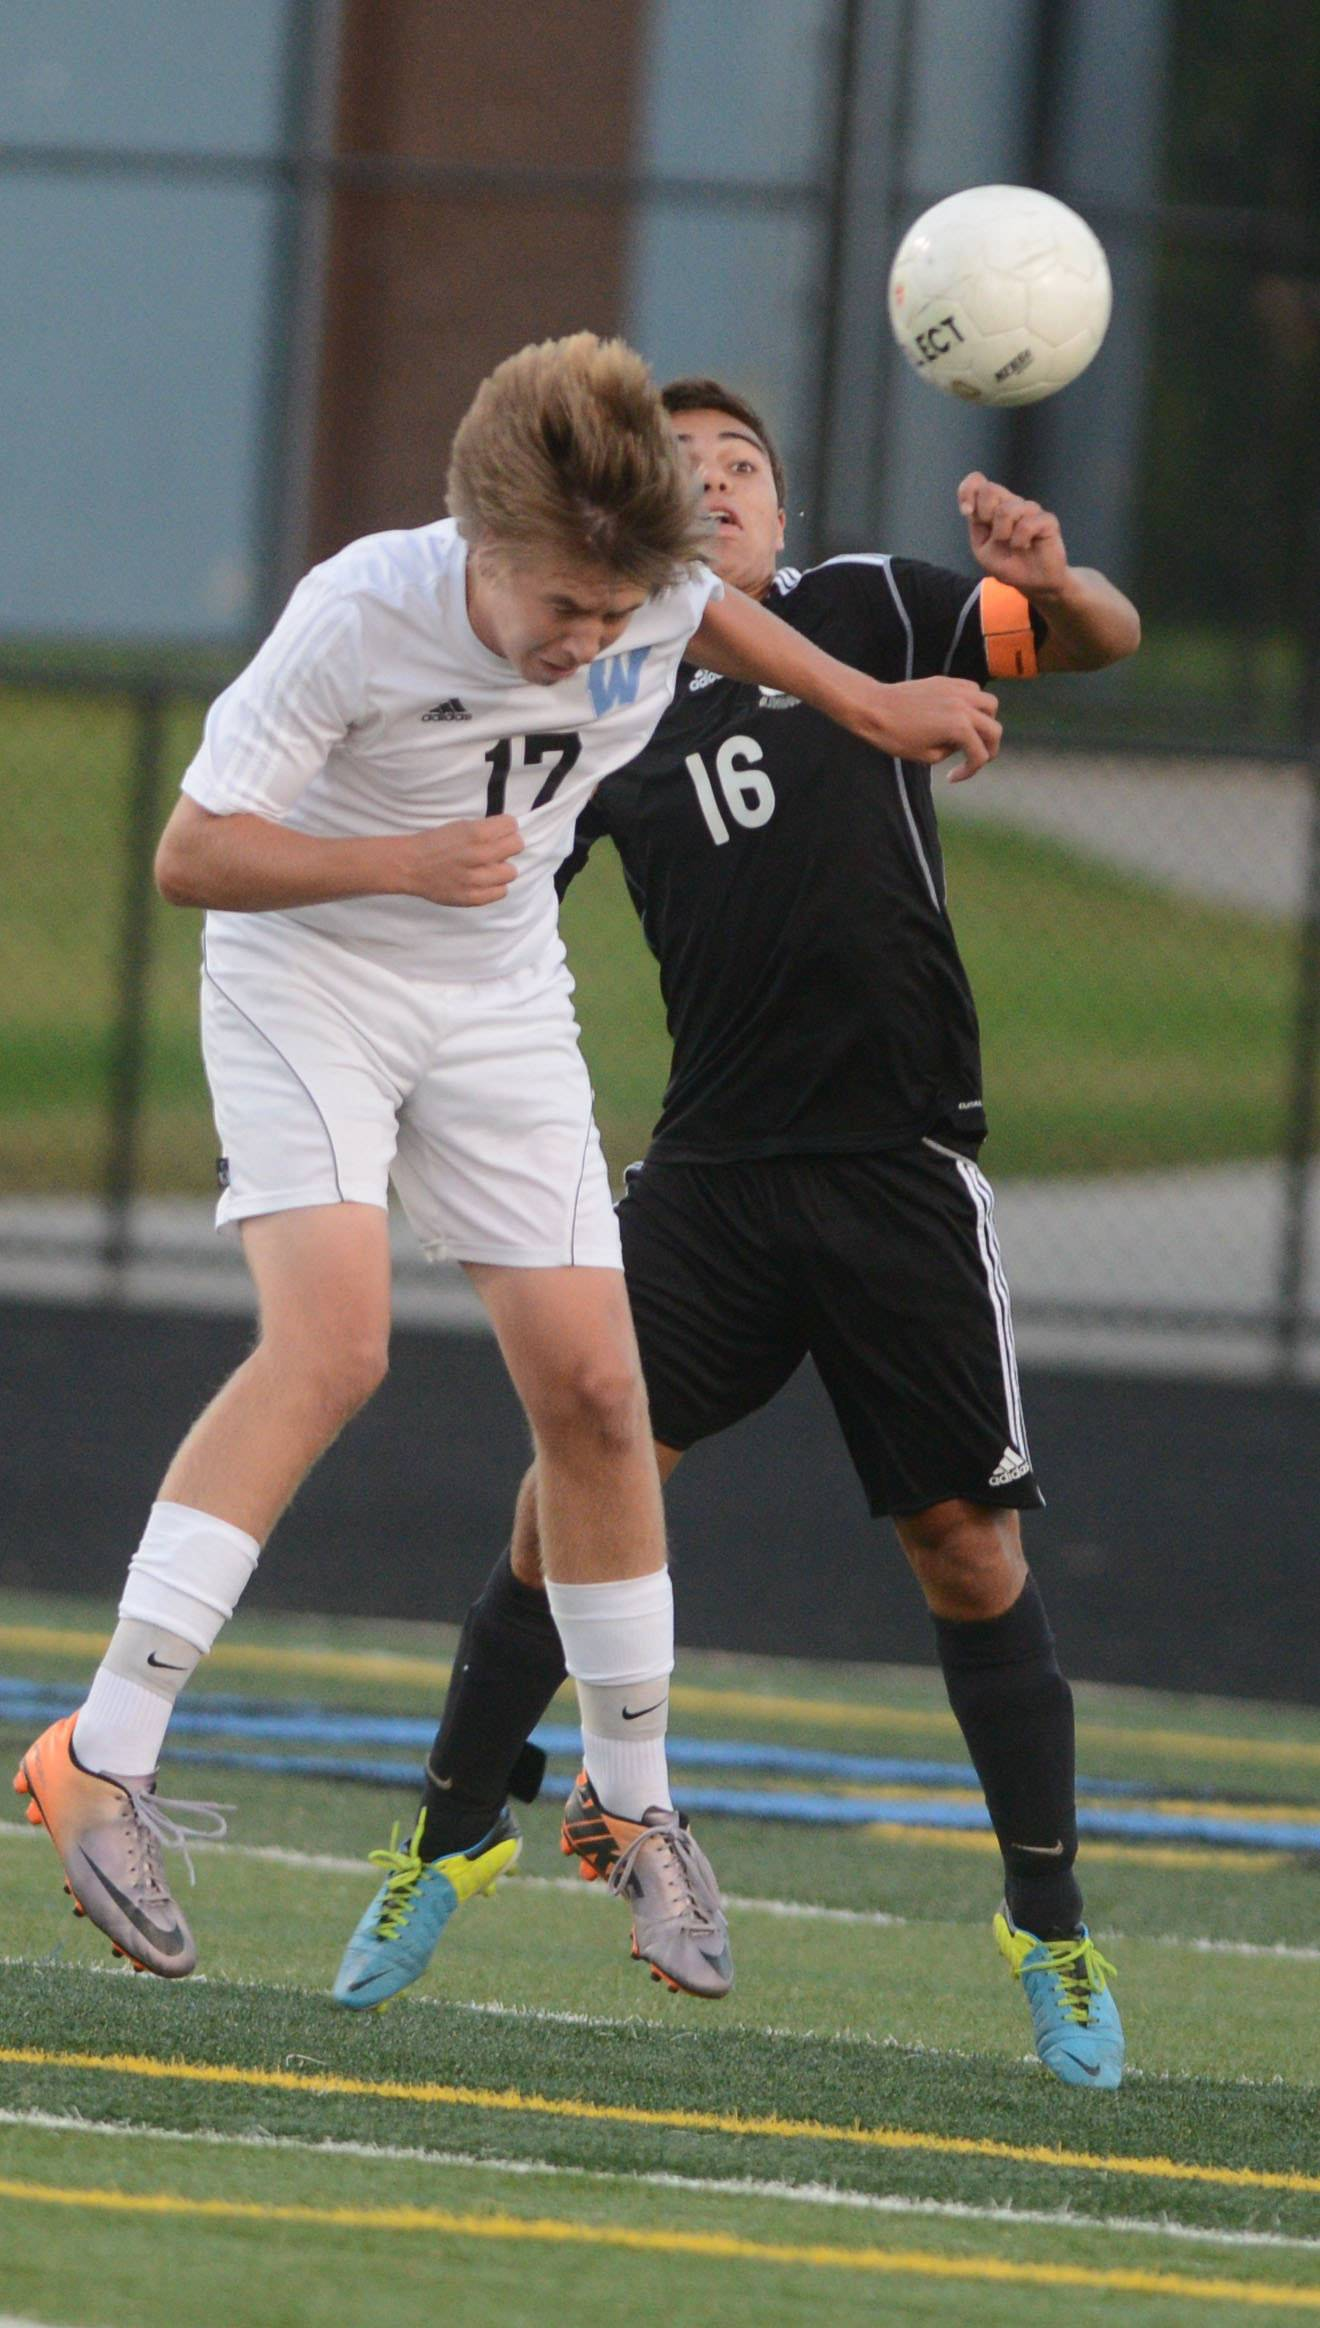 Lucas Betts of Willowbrook and William Lanzillo of Glenbard West vie for the ball during the Glenbard West at Willowbrook boys soccer game Thursday.